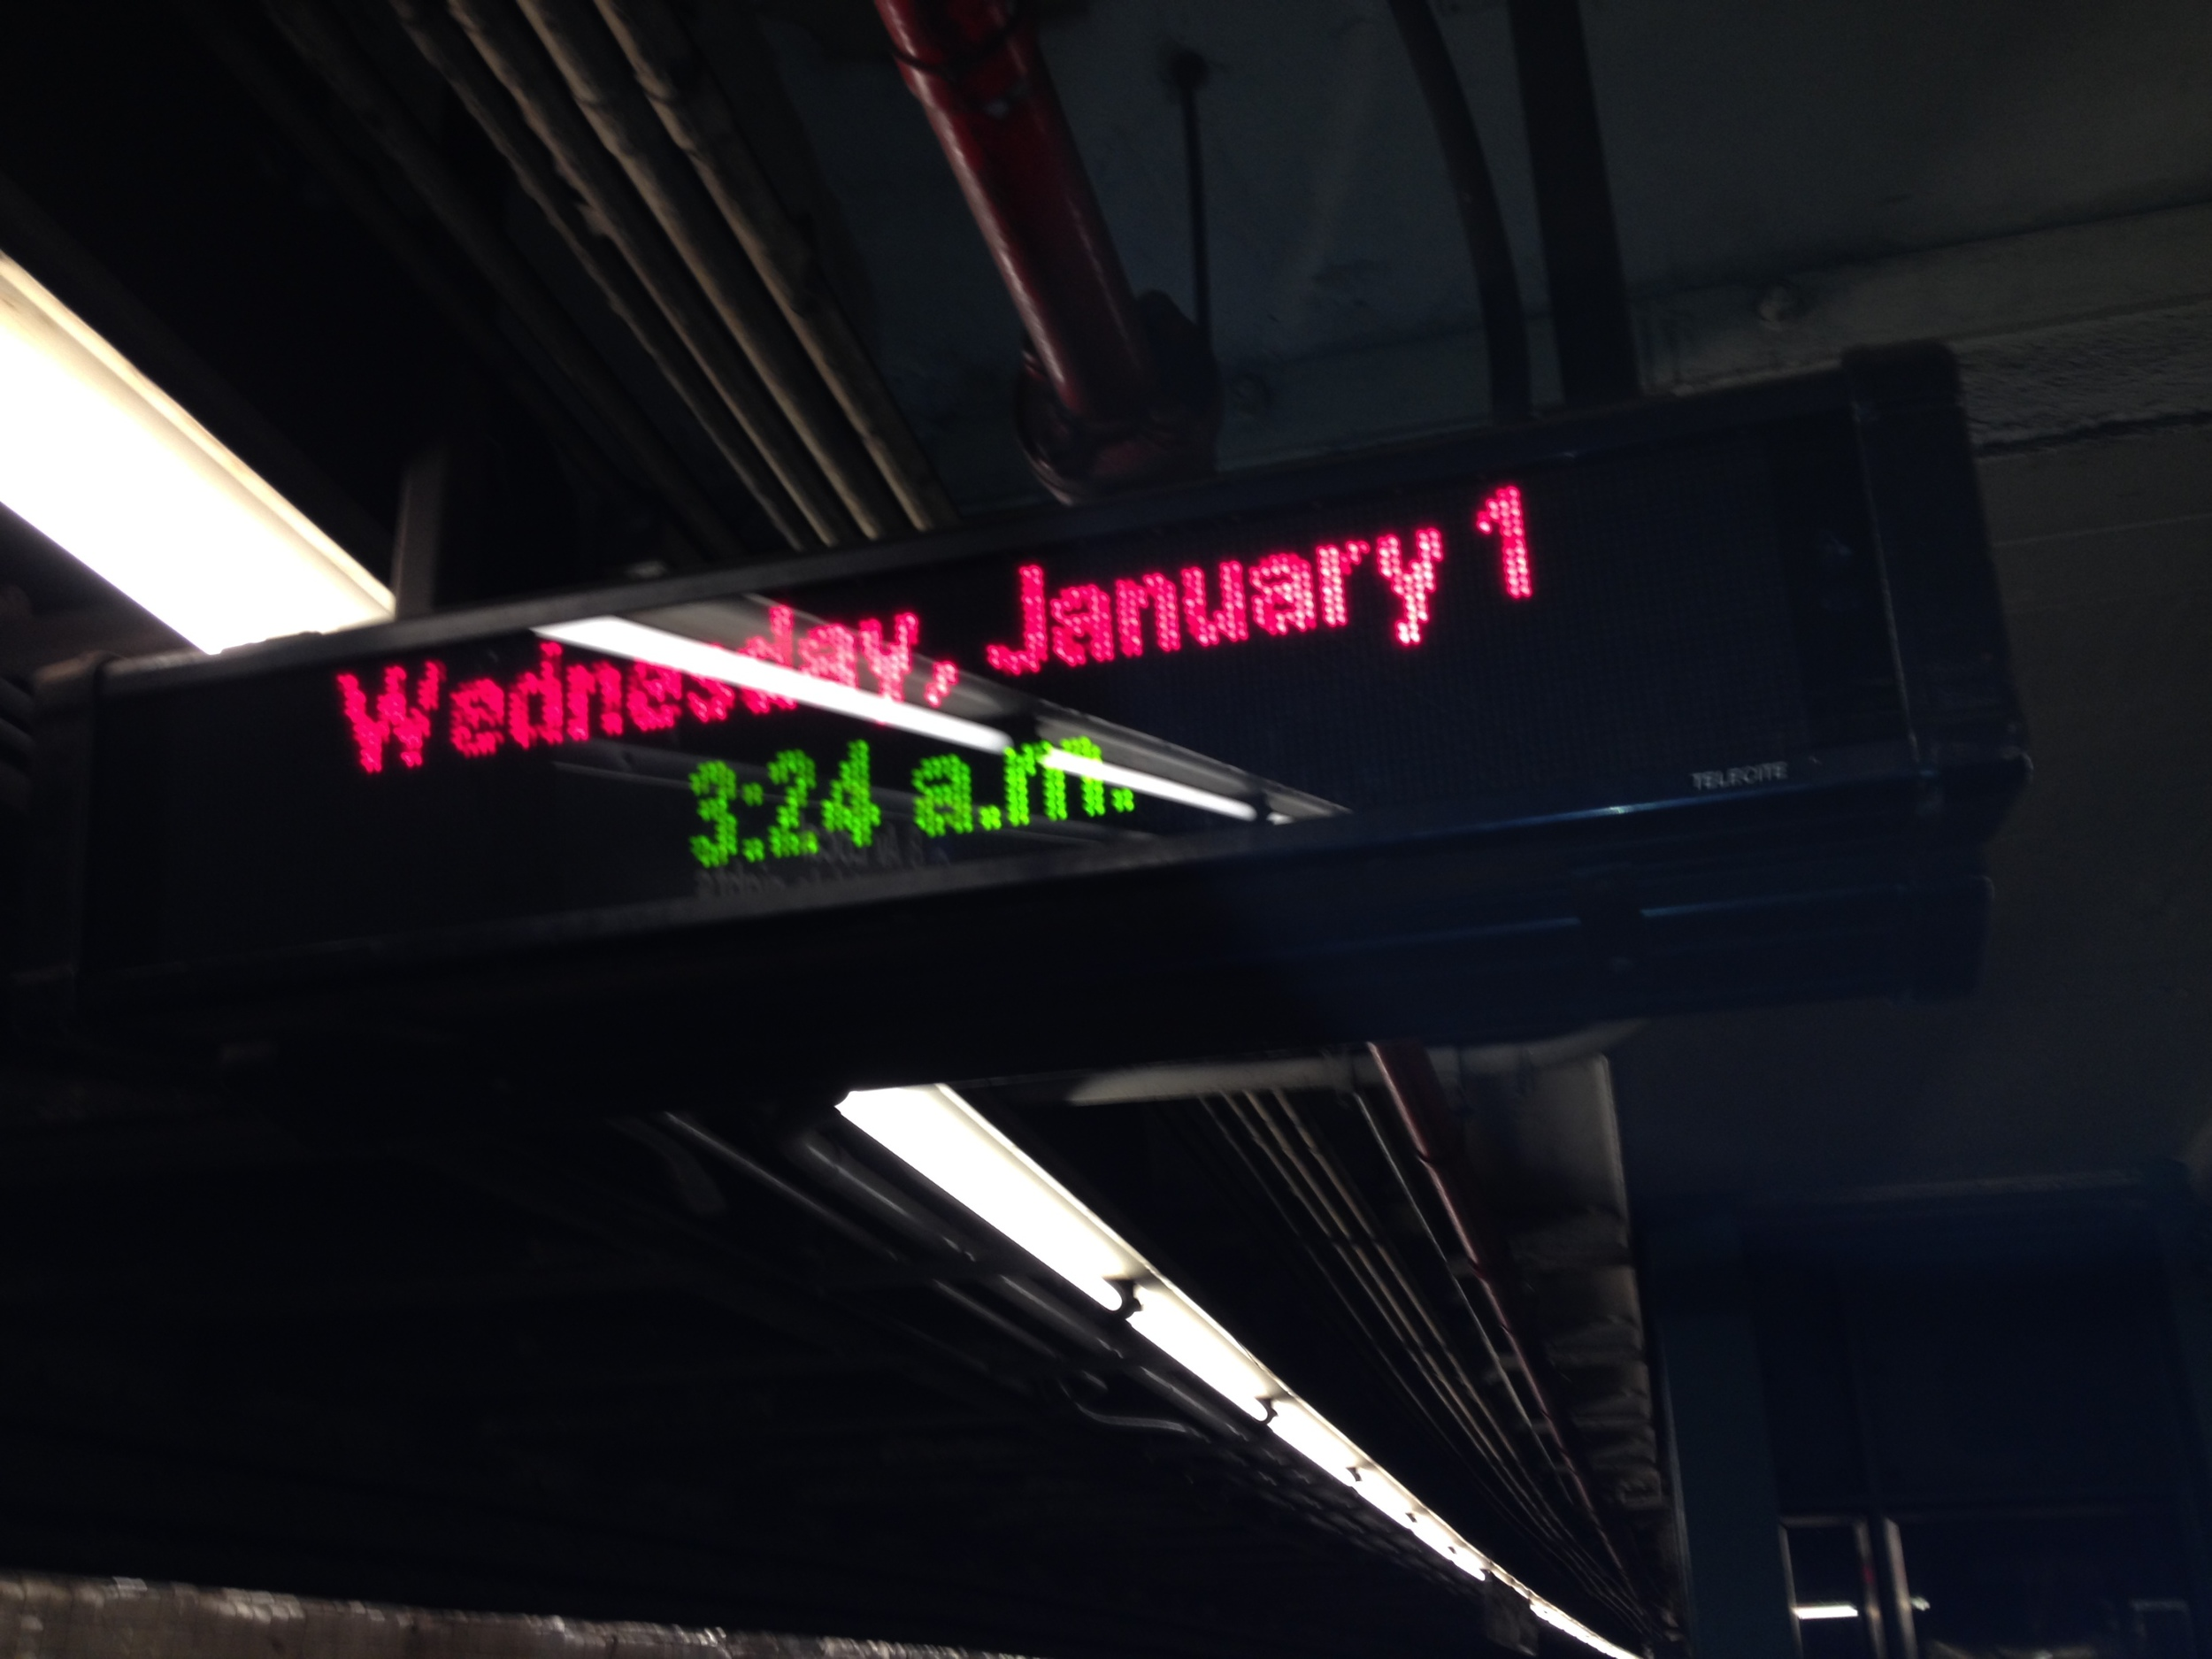 Getting home after new year's eve. Somehow we took the train from Columbus Circle (59th street) all the way to 125th street. We were trying to get to 79th. ಠ_ಠ